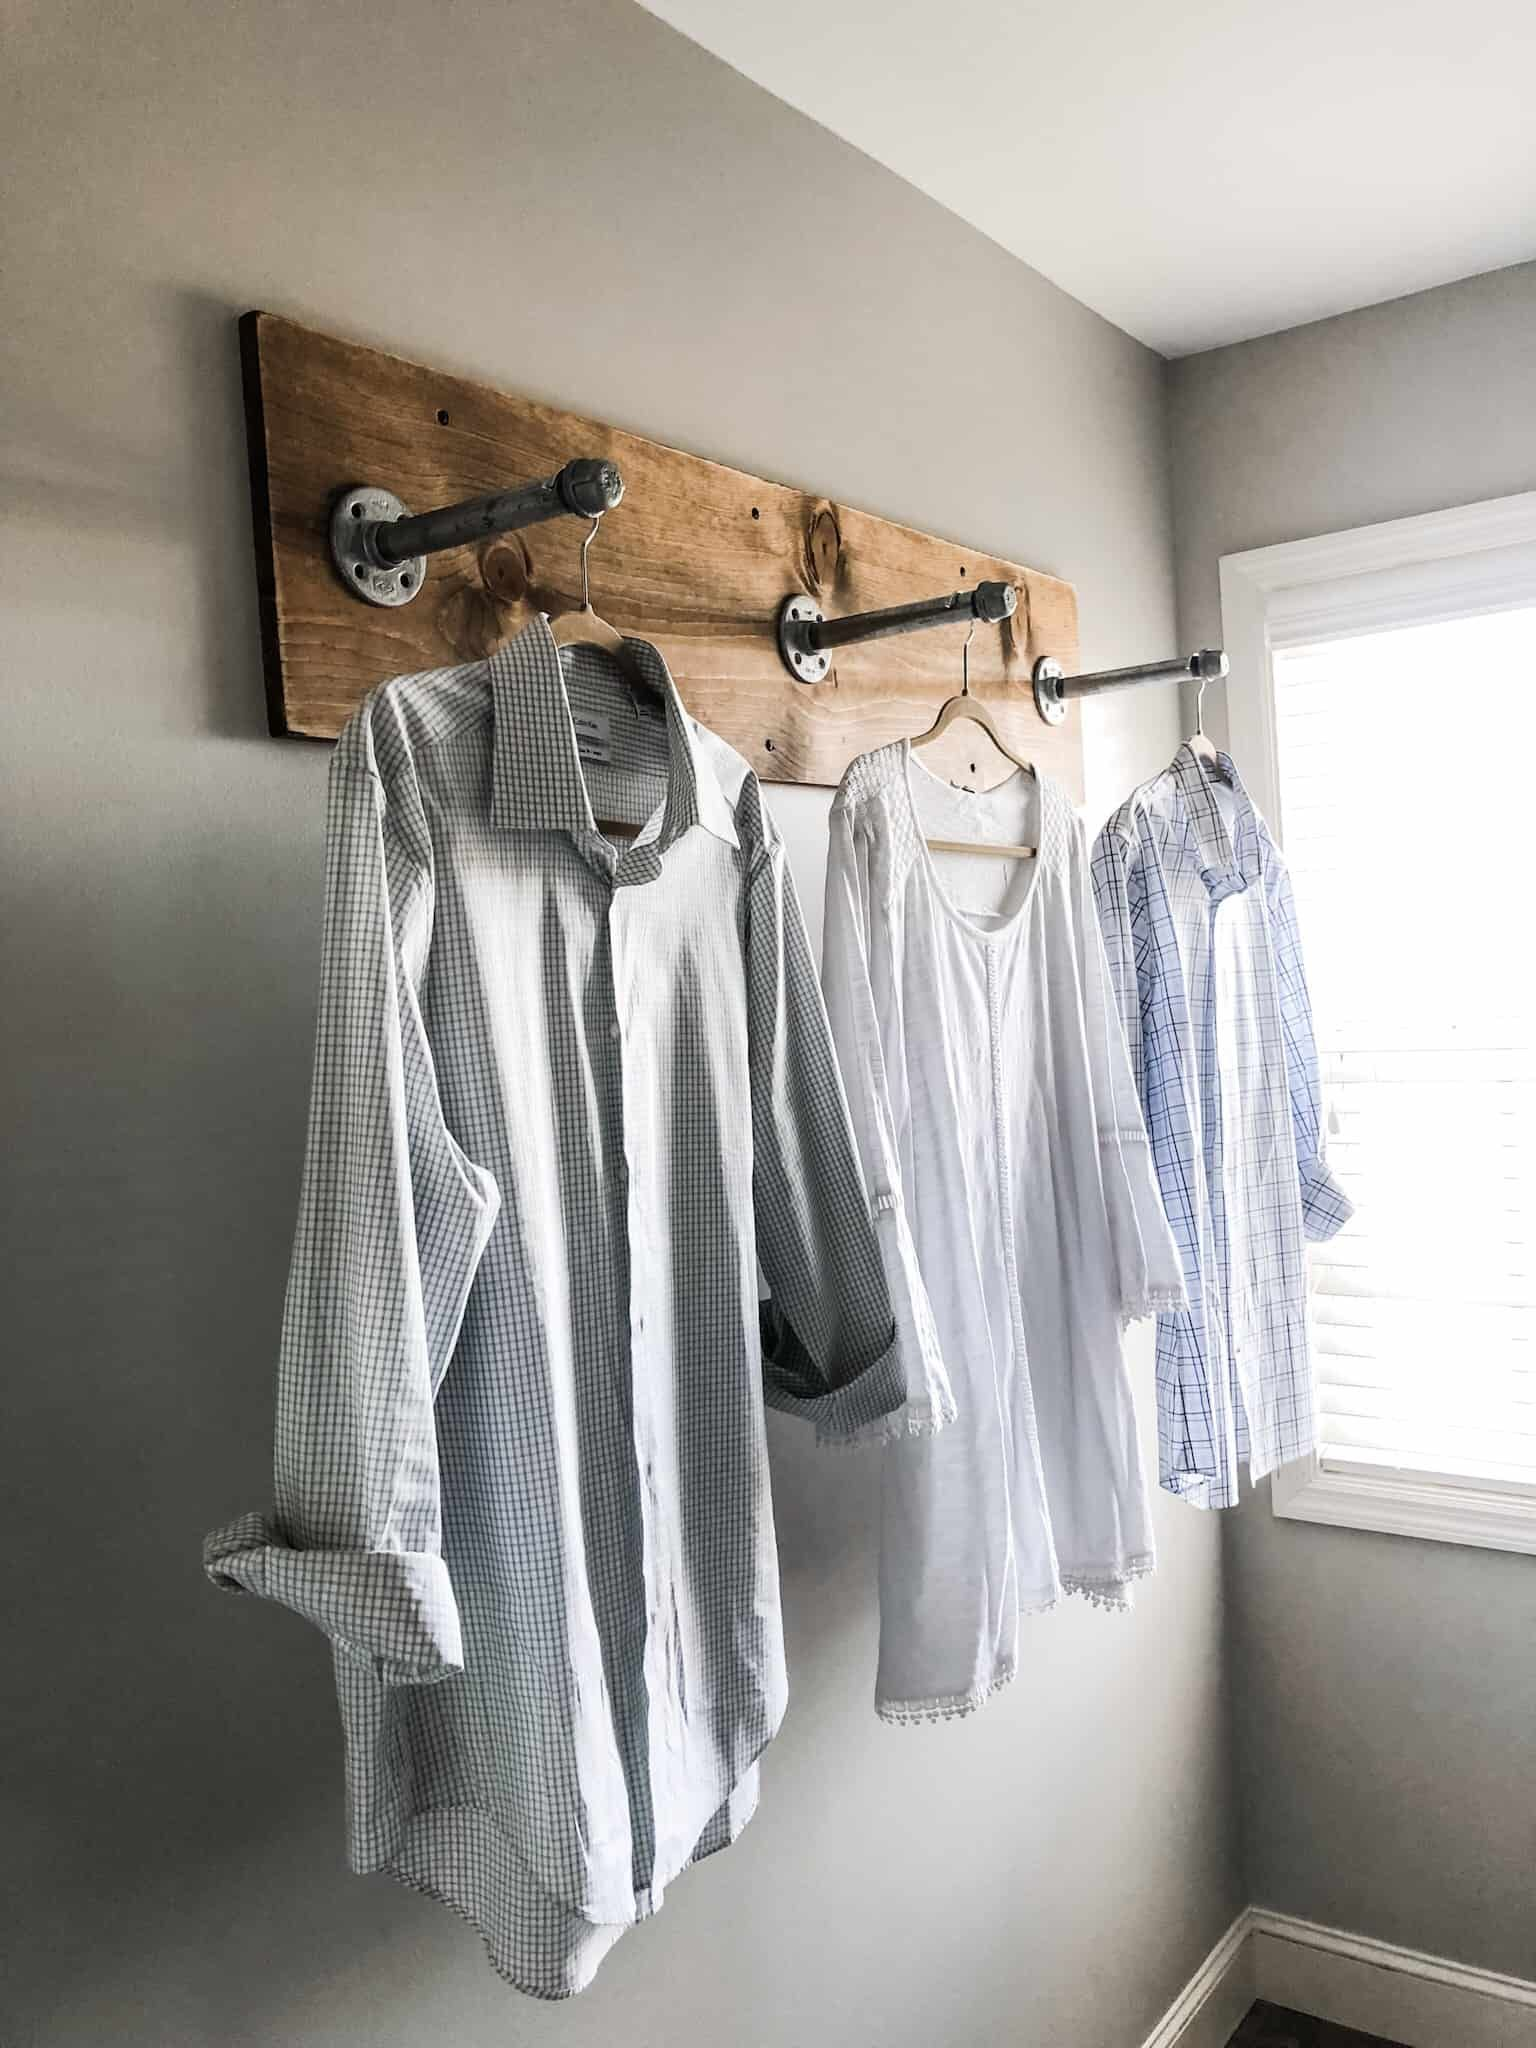 22 Diy Clothes Racks In 2020 Organize Your Closet Laundry Room